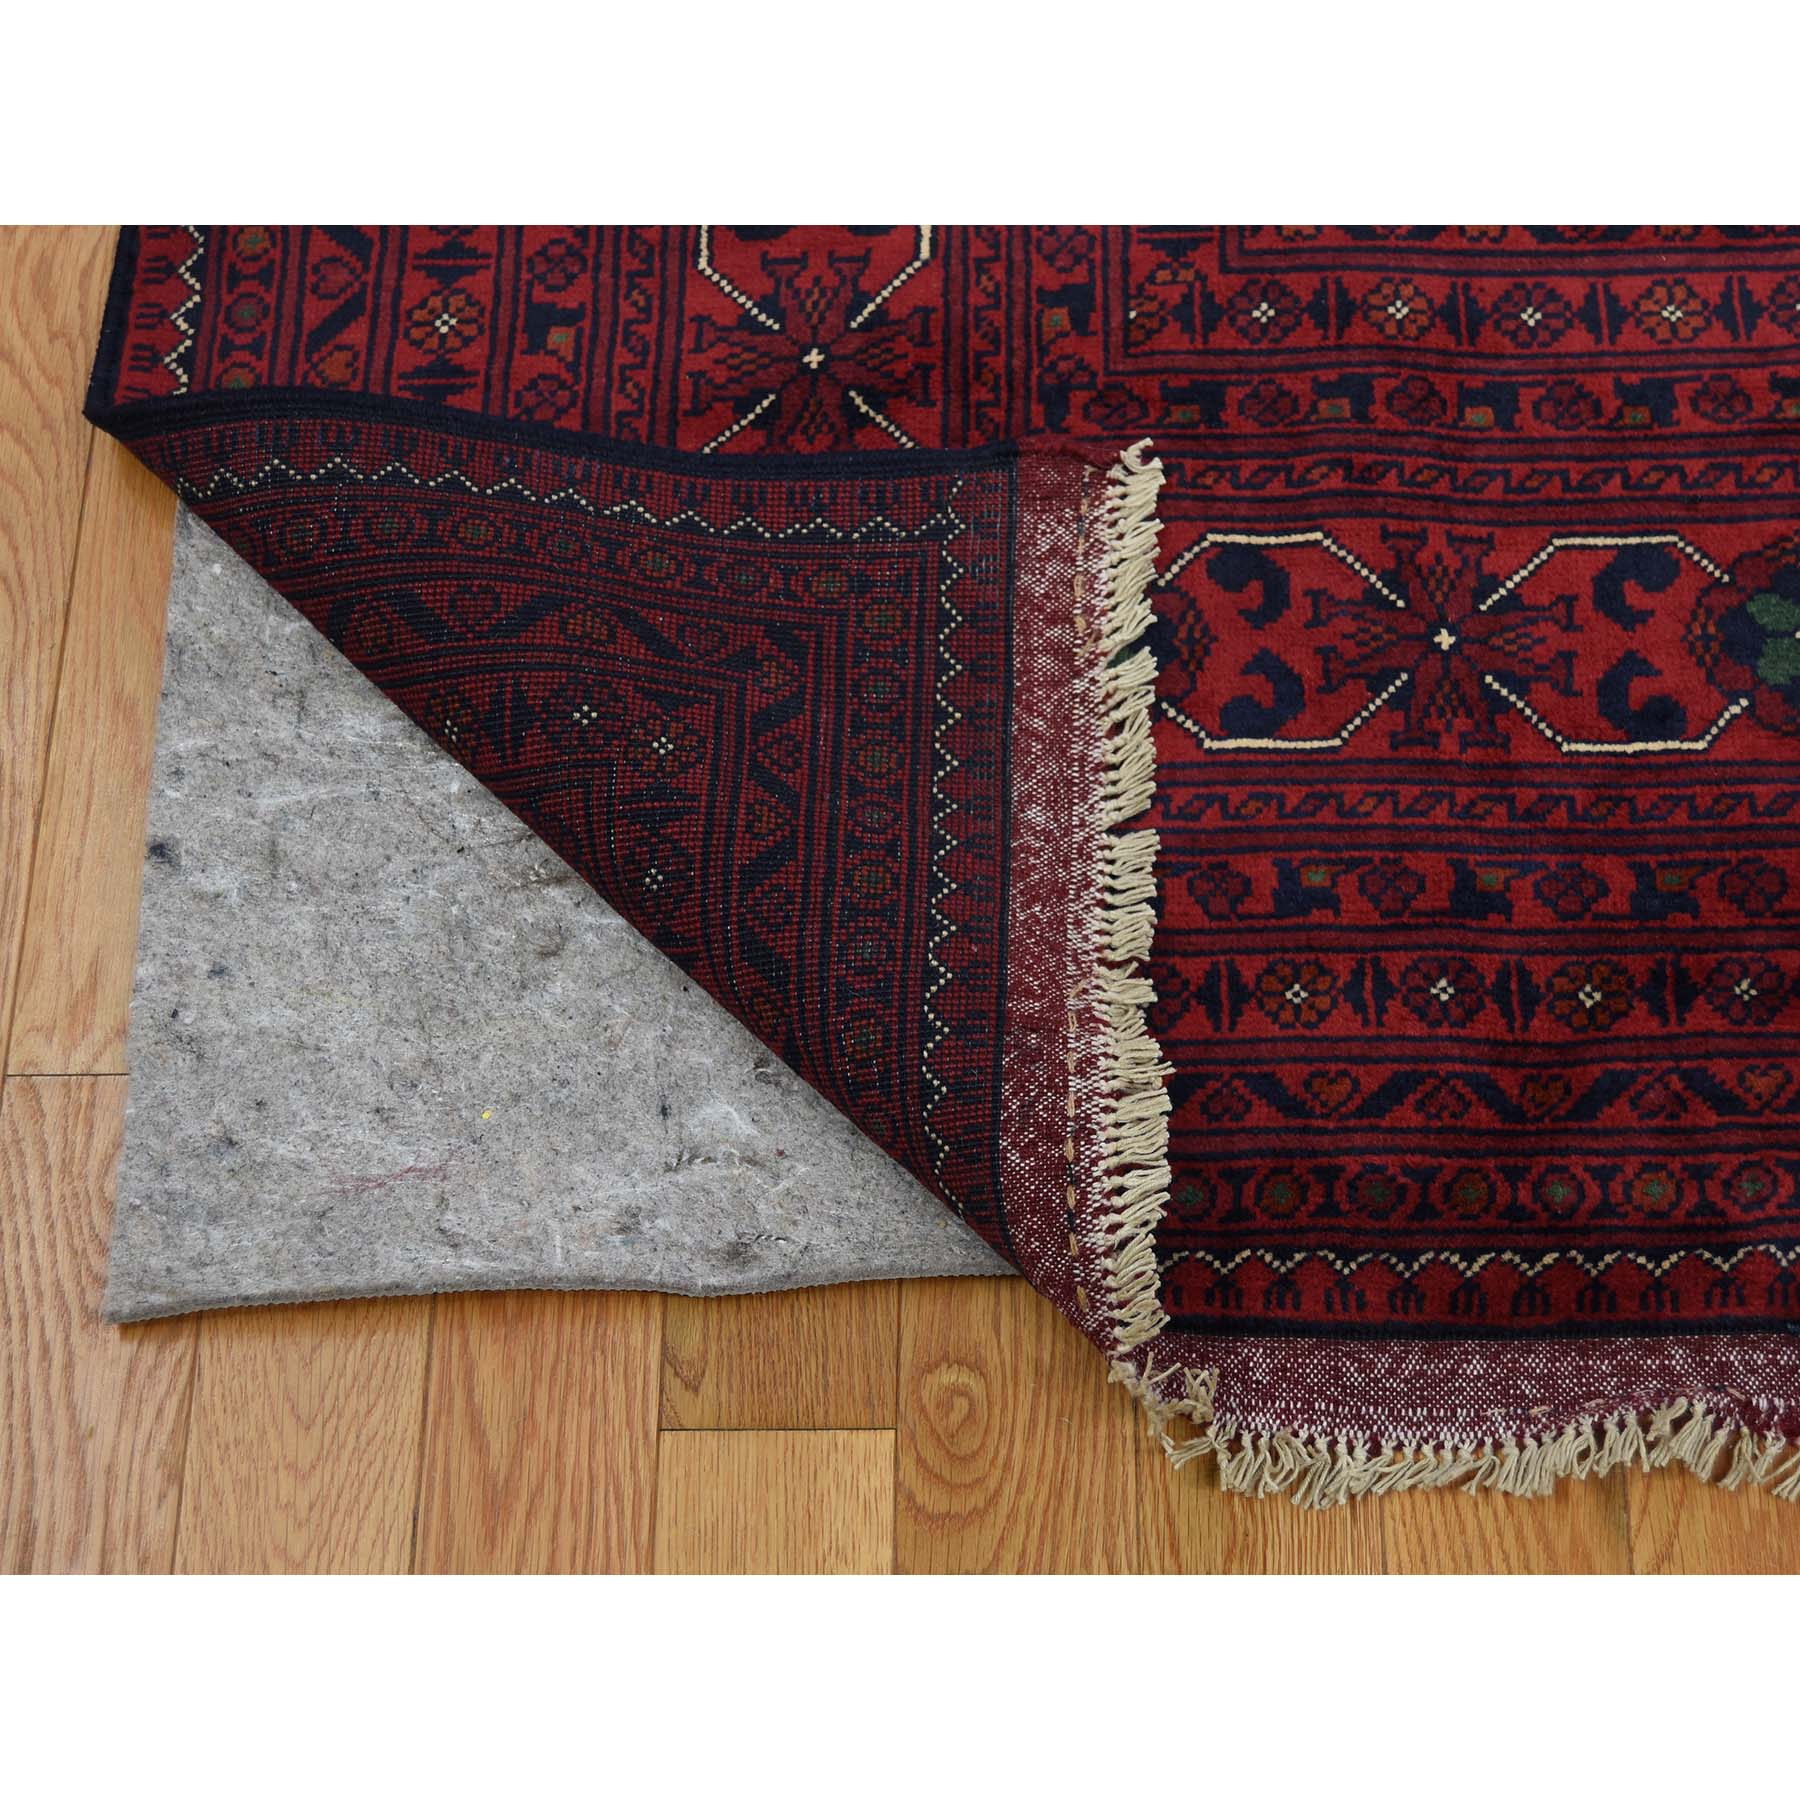 13-1 x19-8  Mansion Size Afghan Khamyab Pure Wool Hand Knotted Oriental Rug